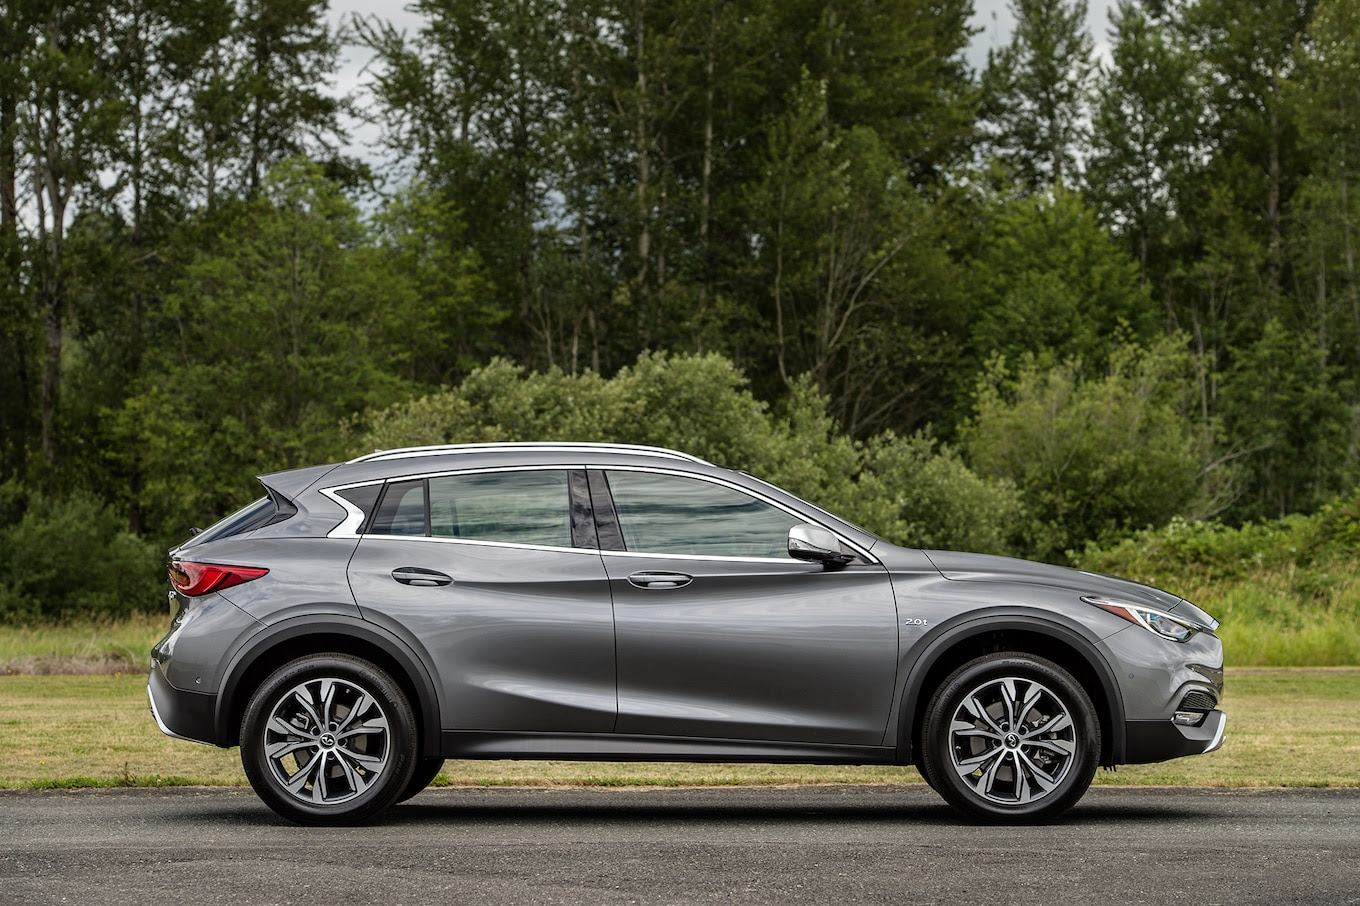 2017 Infiniti QX30 Starts at $30,945, Tops Out at $38,695 - Motor ...